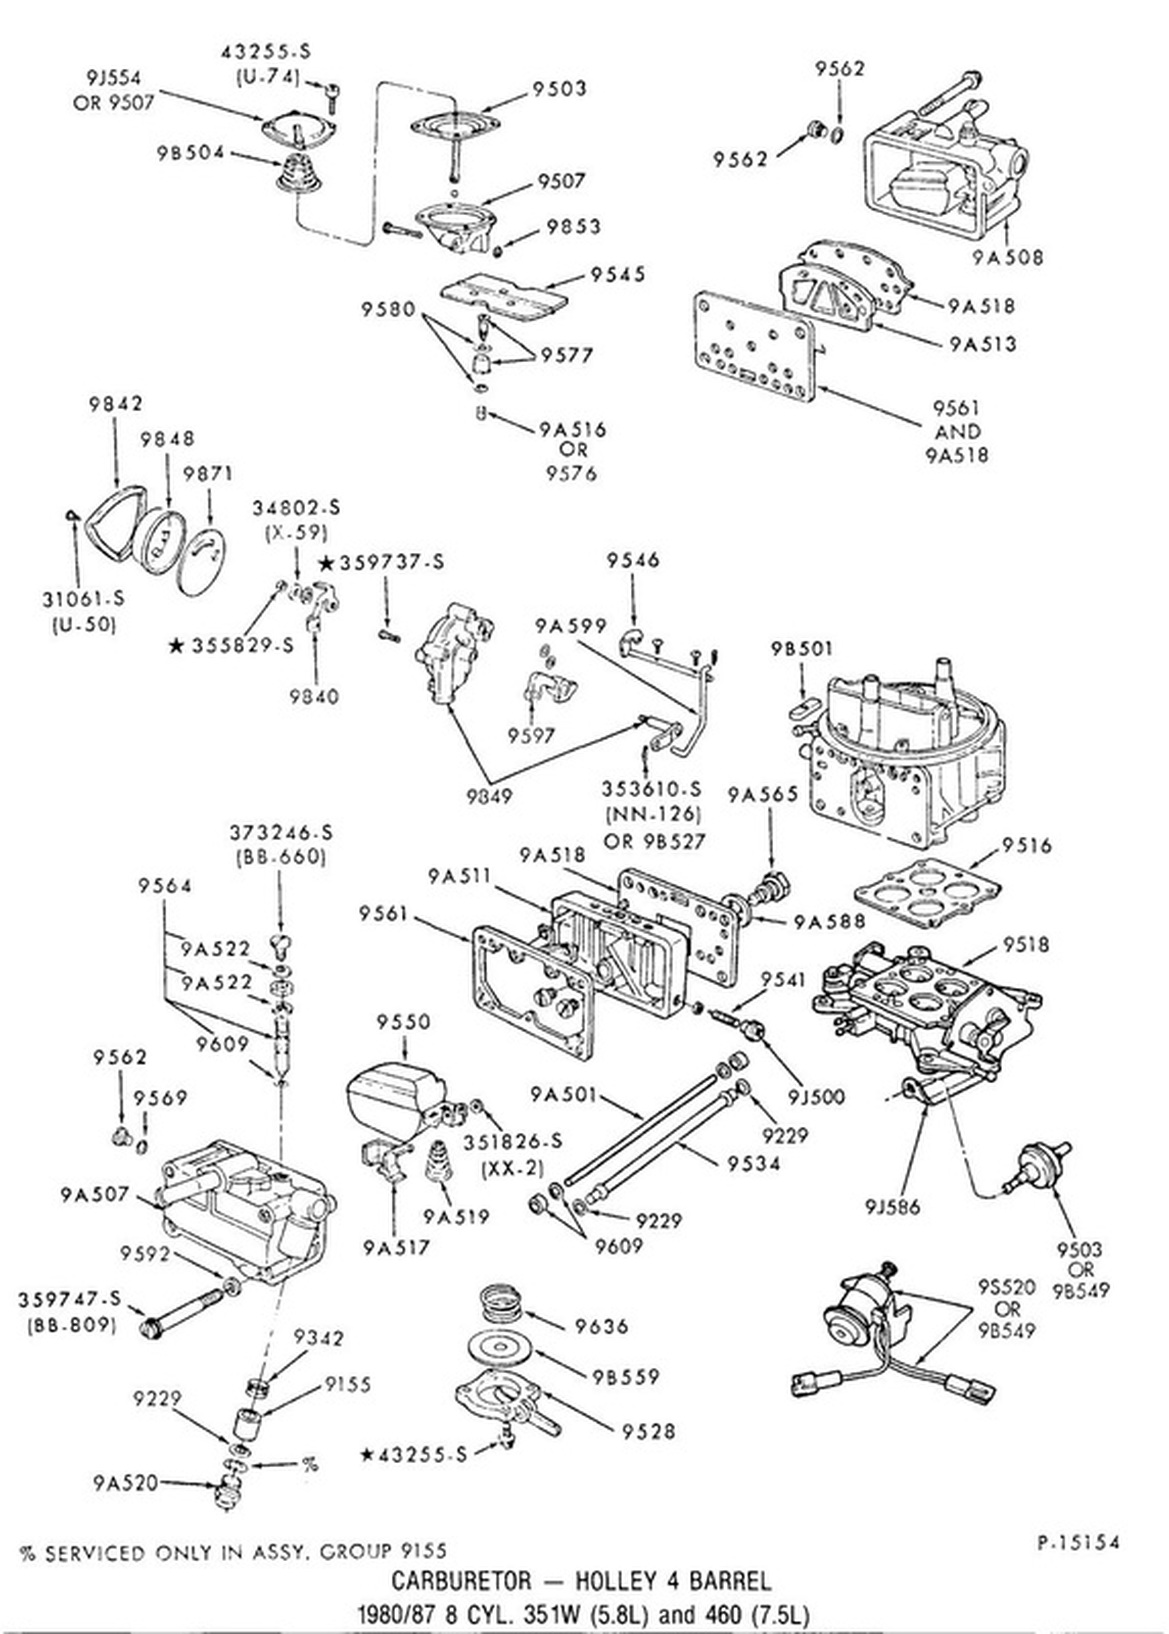 medium resolution of how to use this document to use this document you need a carburetor part number starting with 95 5 if you don t have that then go to the page entitled